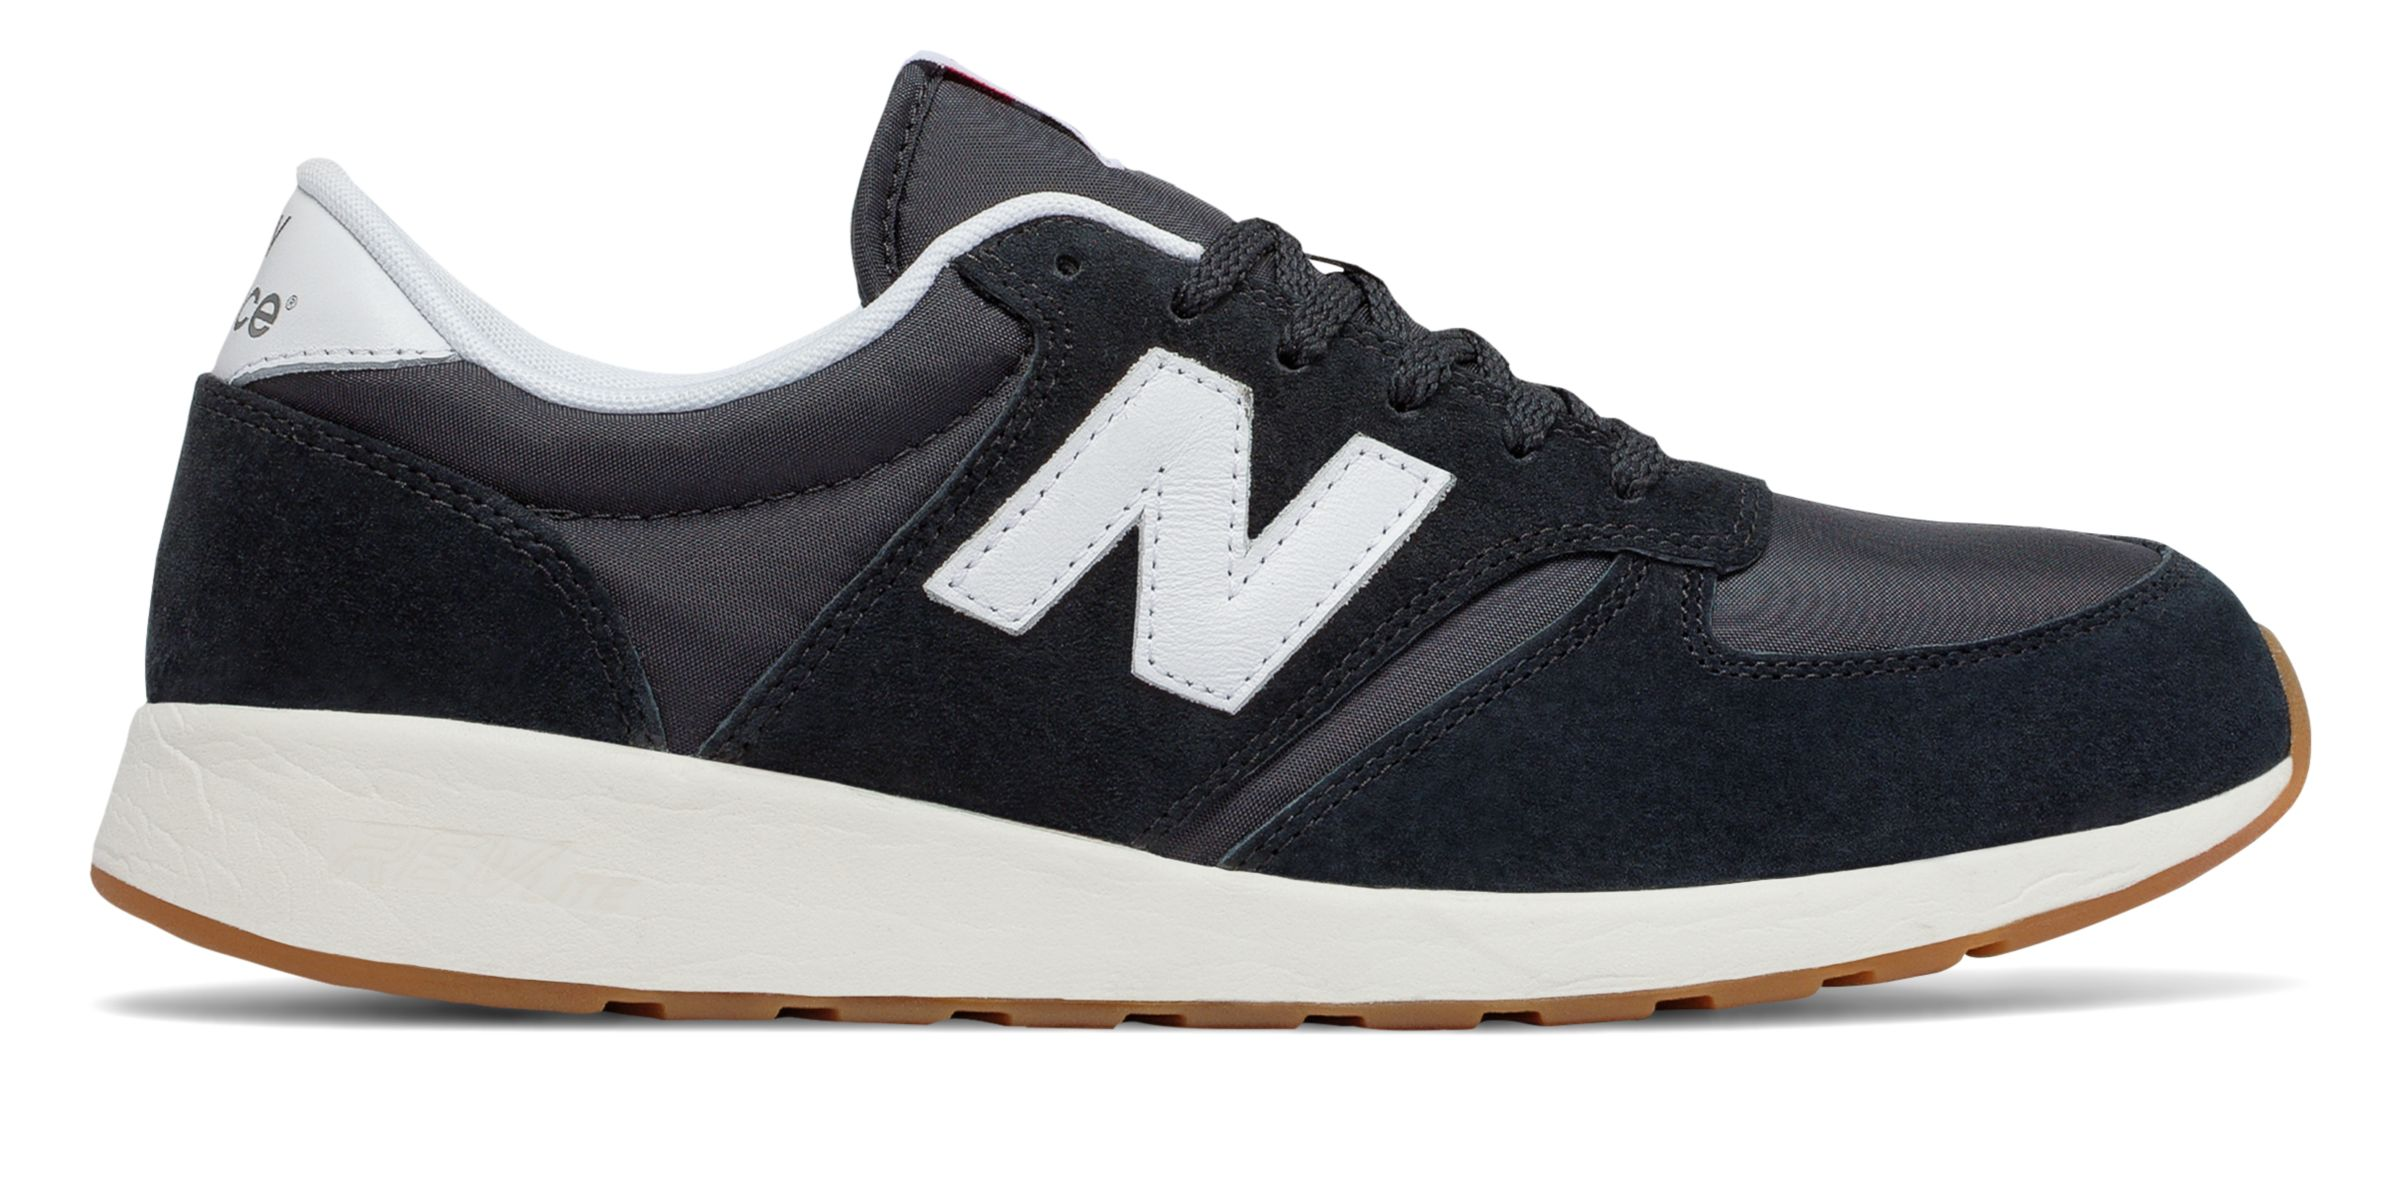 NB 420 Re-Engineered Suede, Black with White